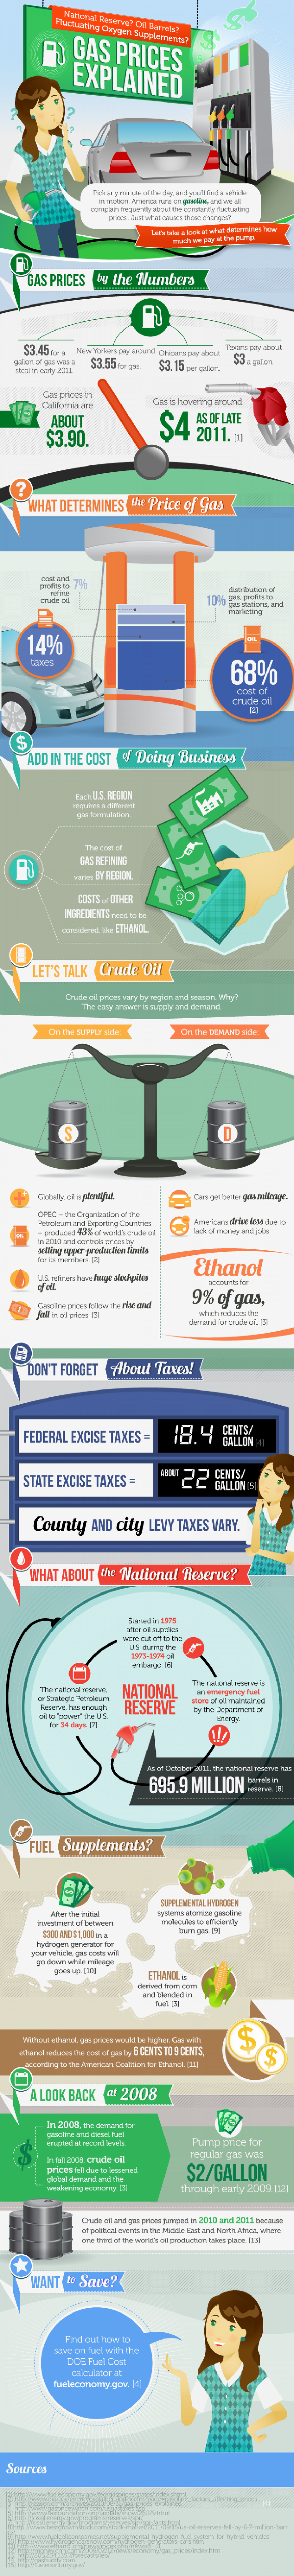 Why Do Gas Prices Fluctuate? Infographic